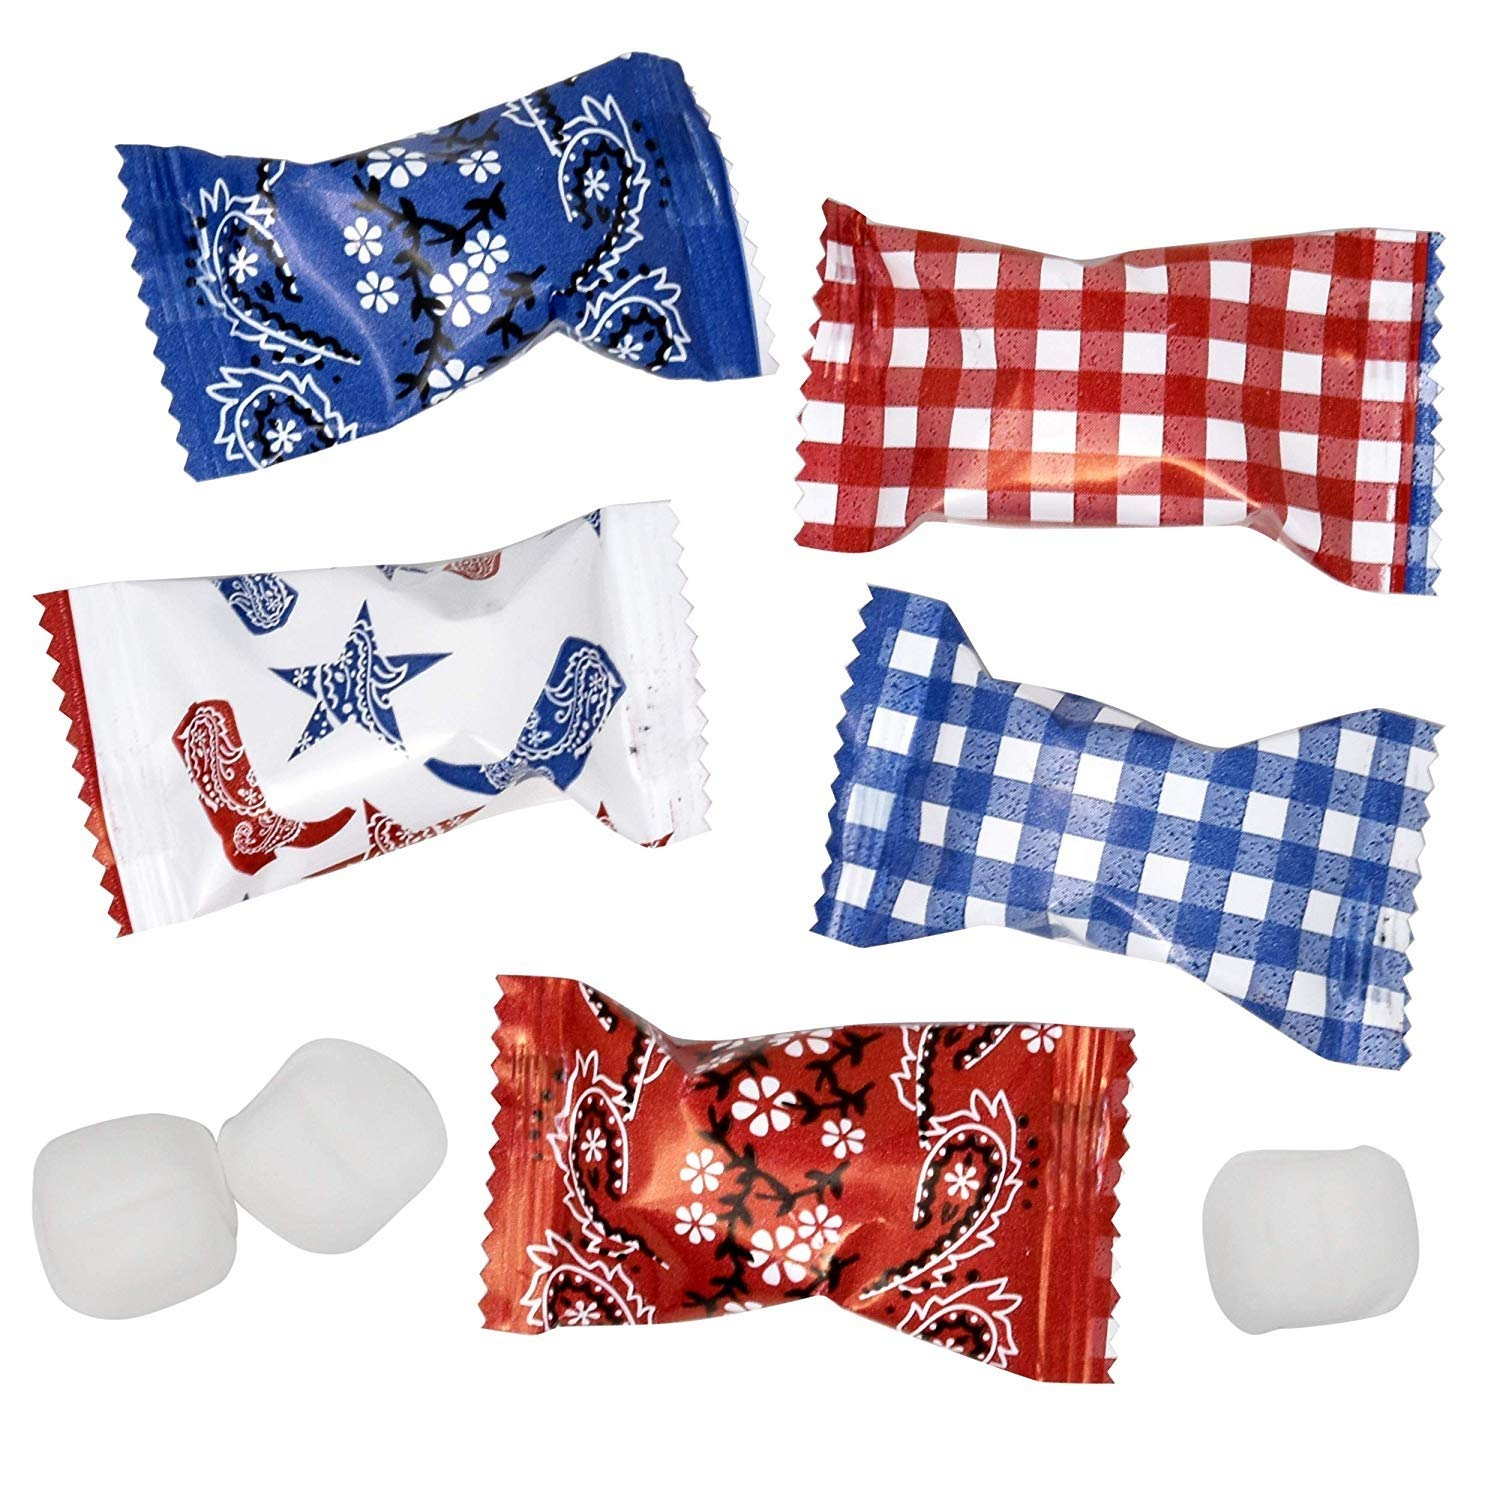 Western Cowboy Bandana Buttermints Candy Bags 100 Count Mint Candies 14 Oz (396g) Treats Sweets Party Favors For Blue & Red Birthday Themes & Parties & For Any Special Occasions